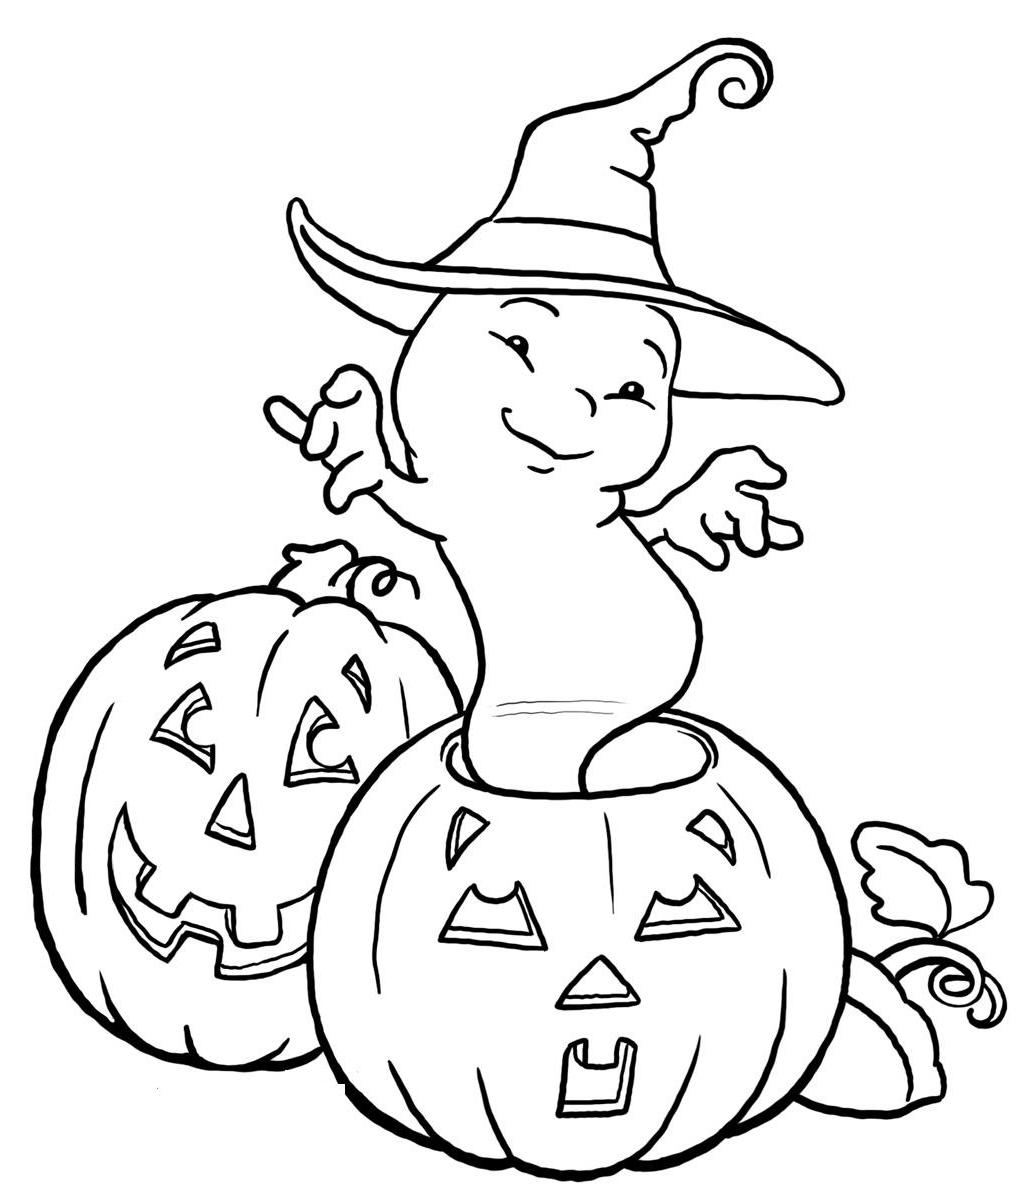 ghost for coloring ghost coloring page super simple coloring ghost for